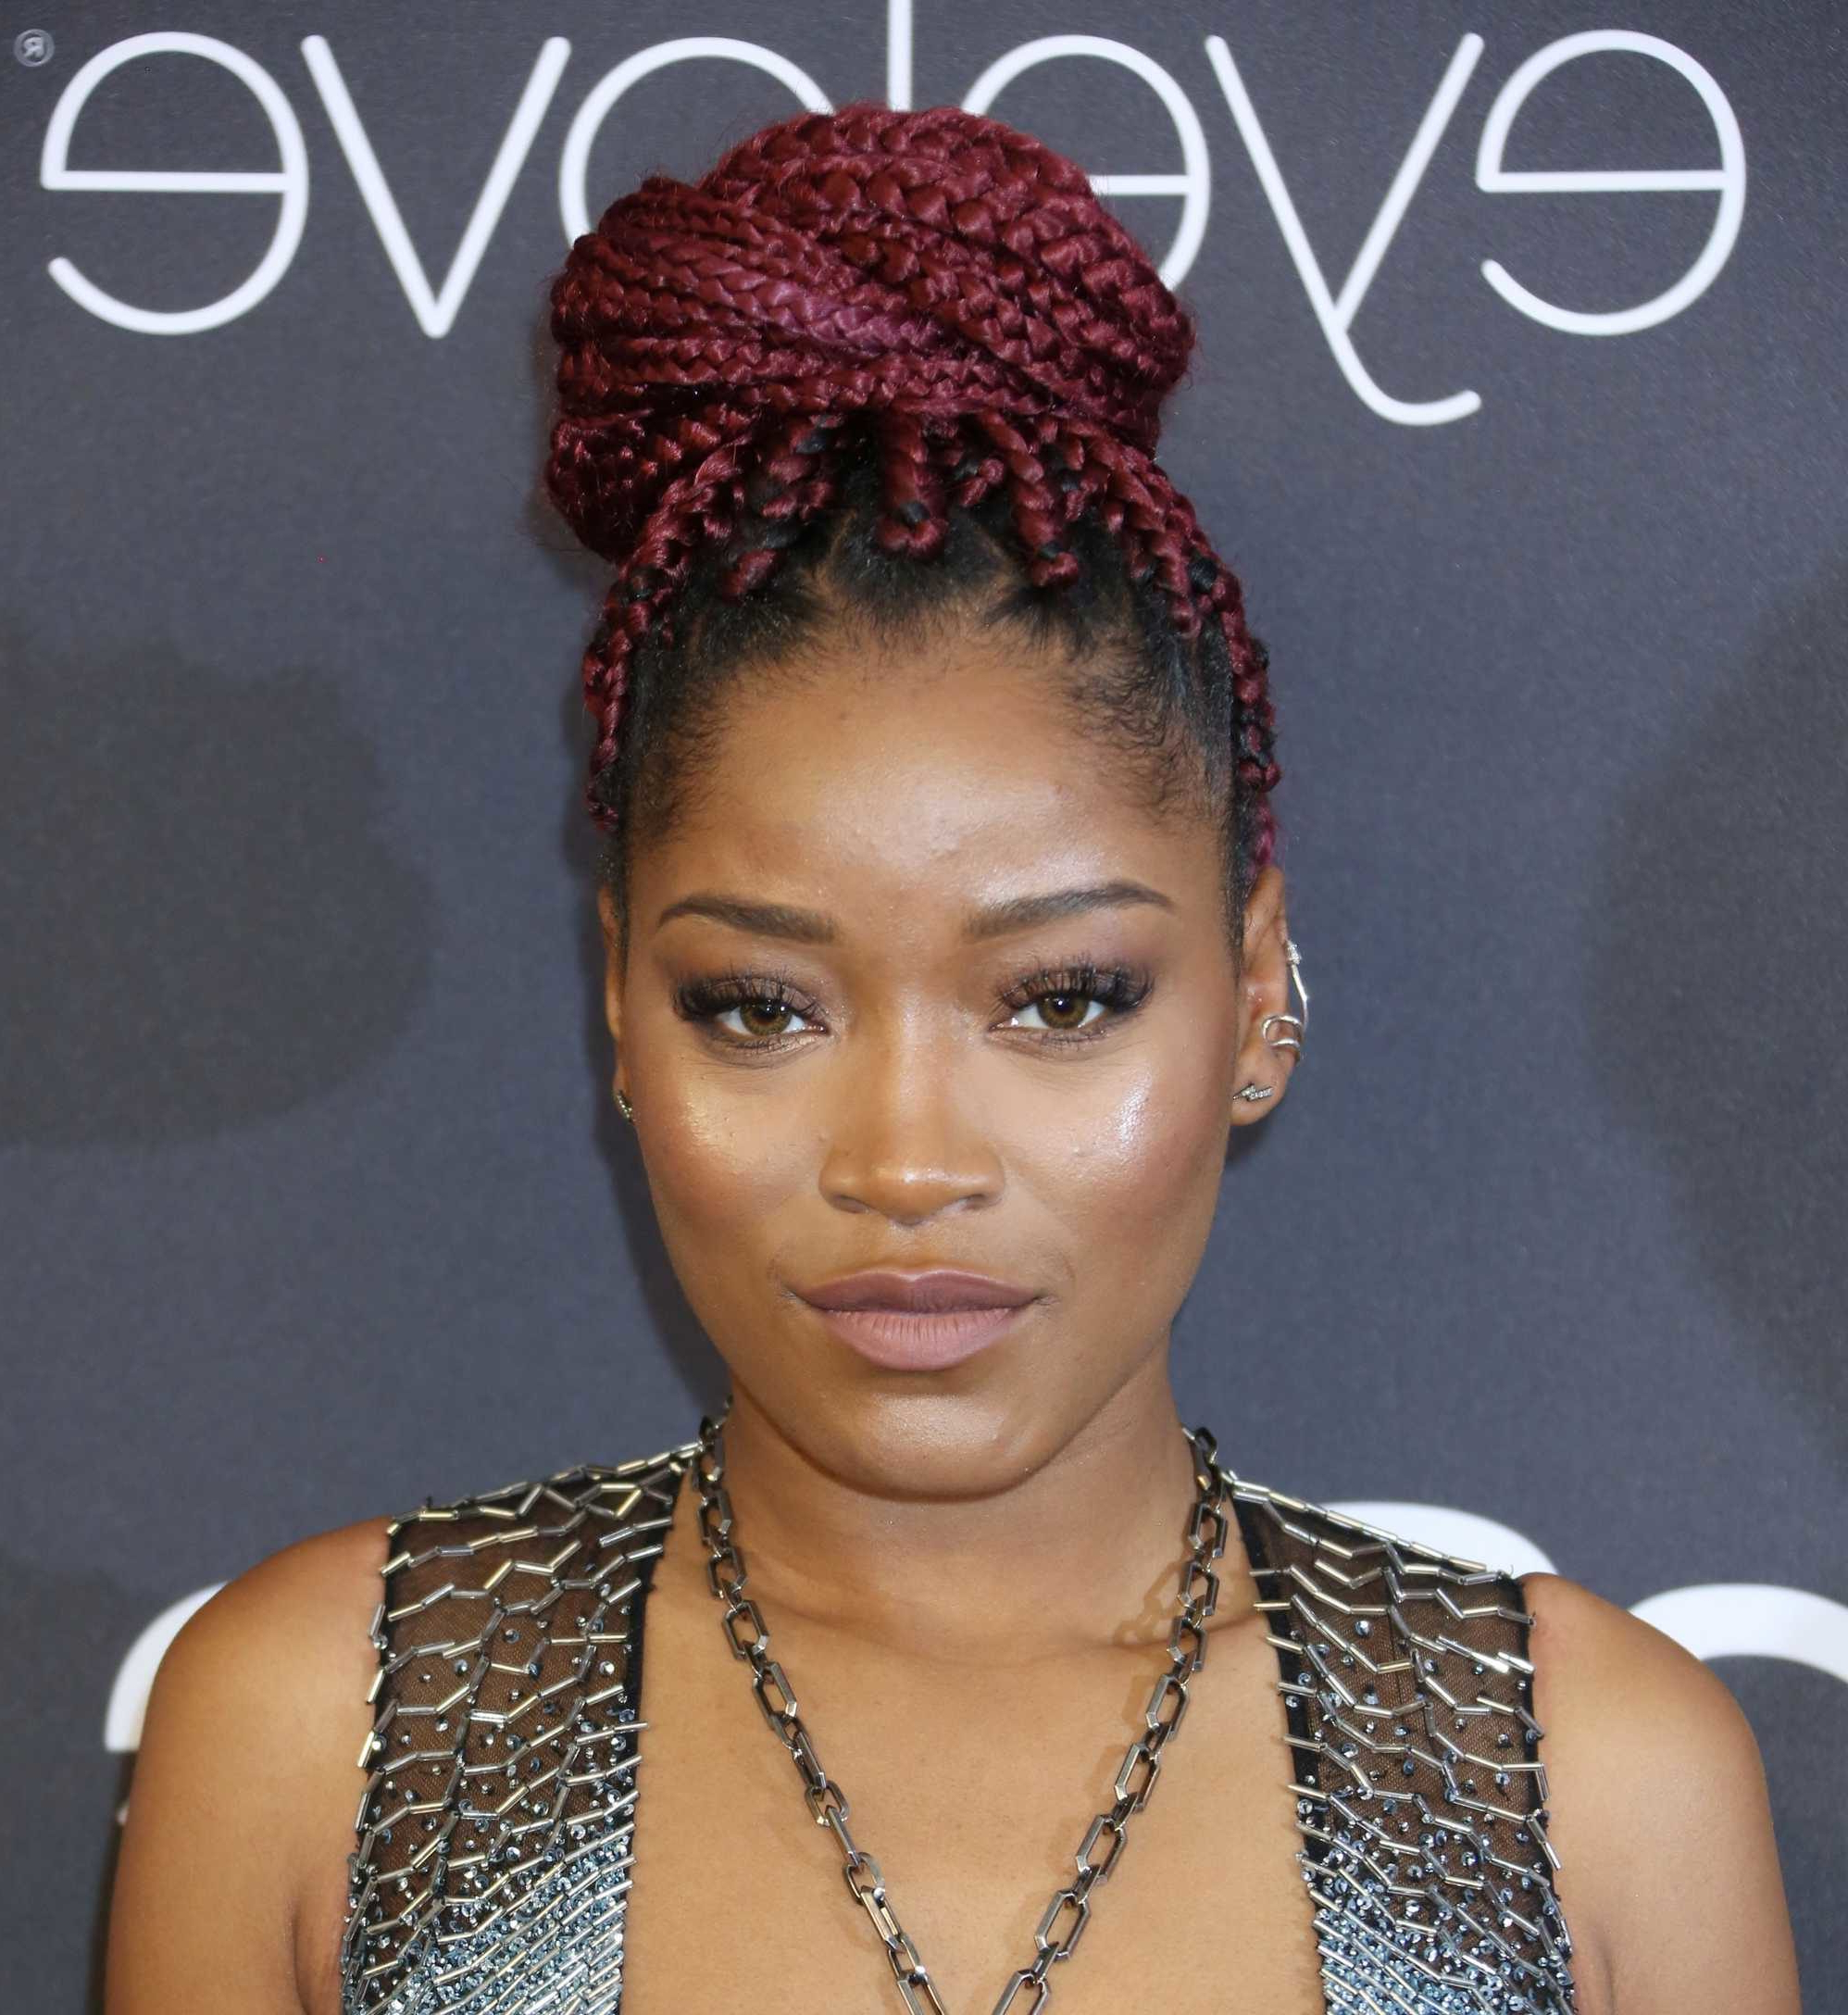 Box Braids: 13 Pretty Hairstyles To Inspire Your Next Look In Well Known Box Braided Bun Hairstyles (View 7 of 20)